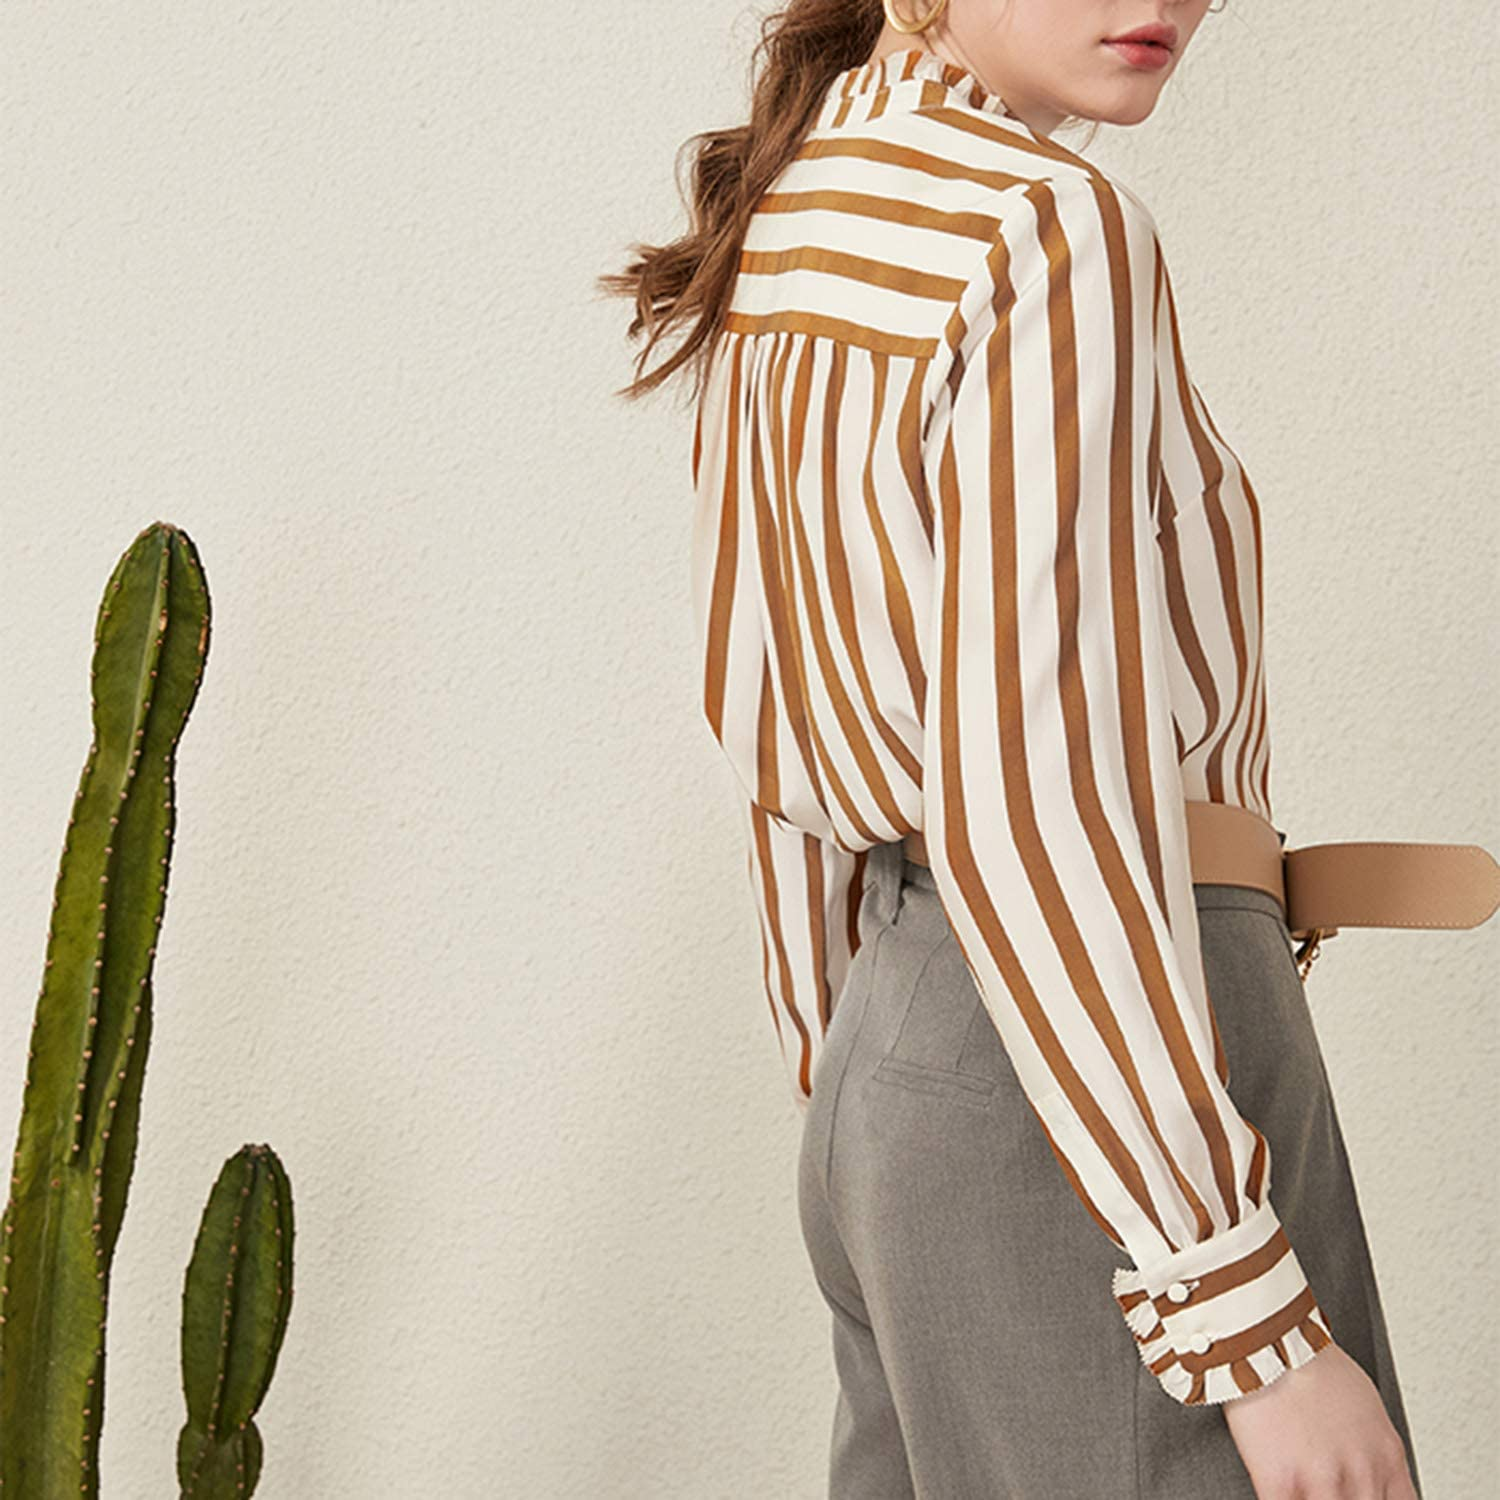 QYQCX Ladies Orange Striped Silk Long Sleeve Shirt